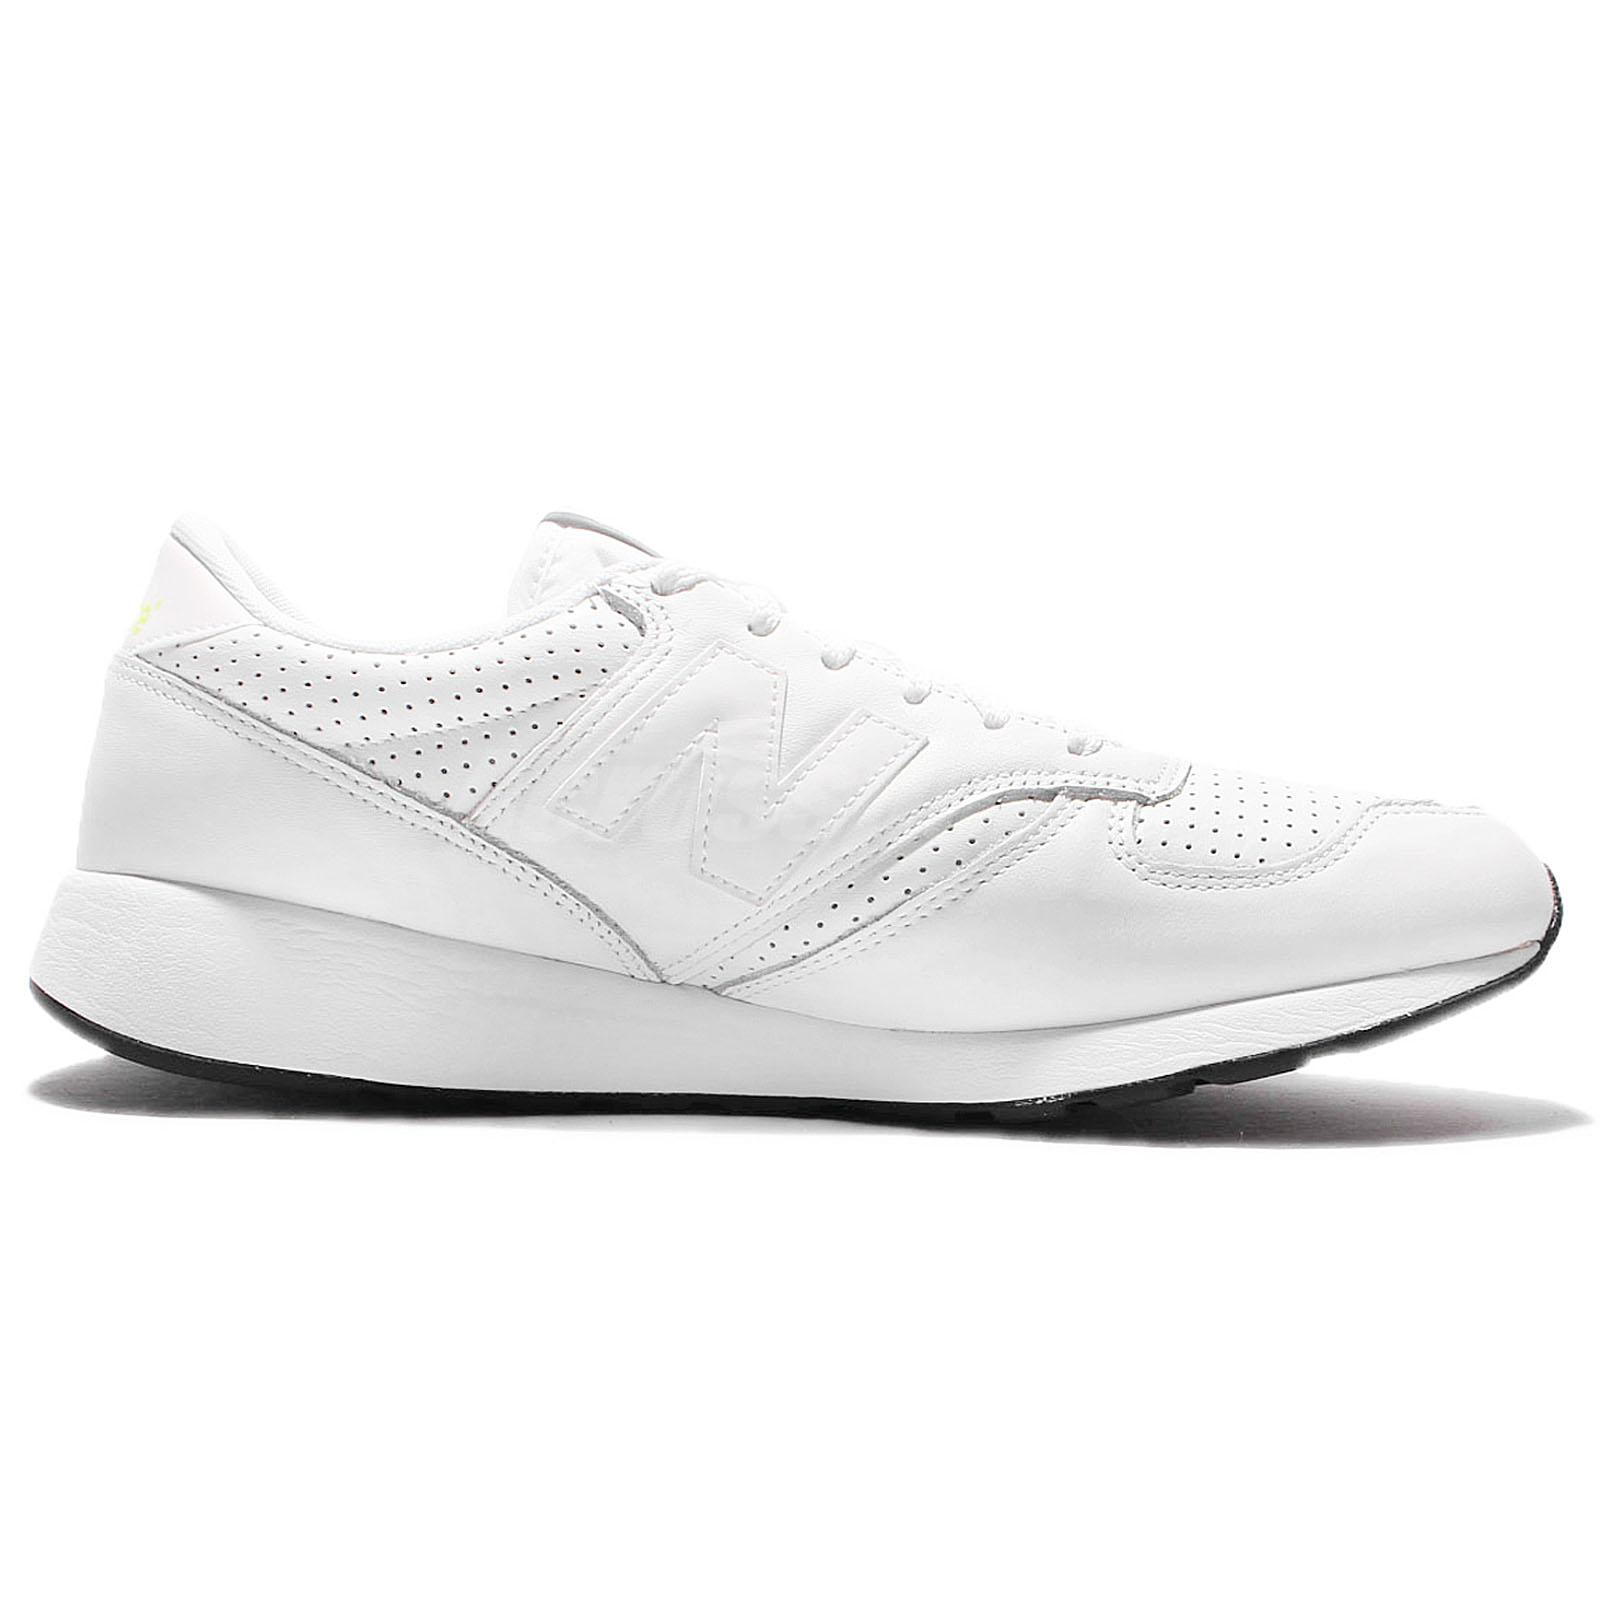 New Balance MRL420SJ D Retro White Mens Running Shoes Sneakers MRL420SJD